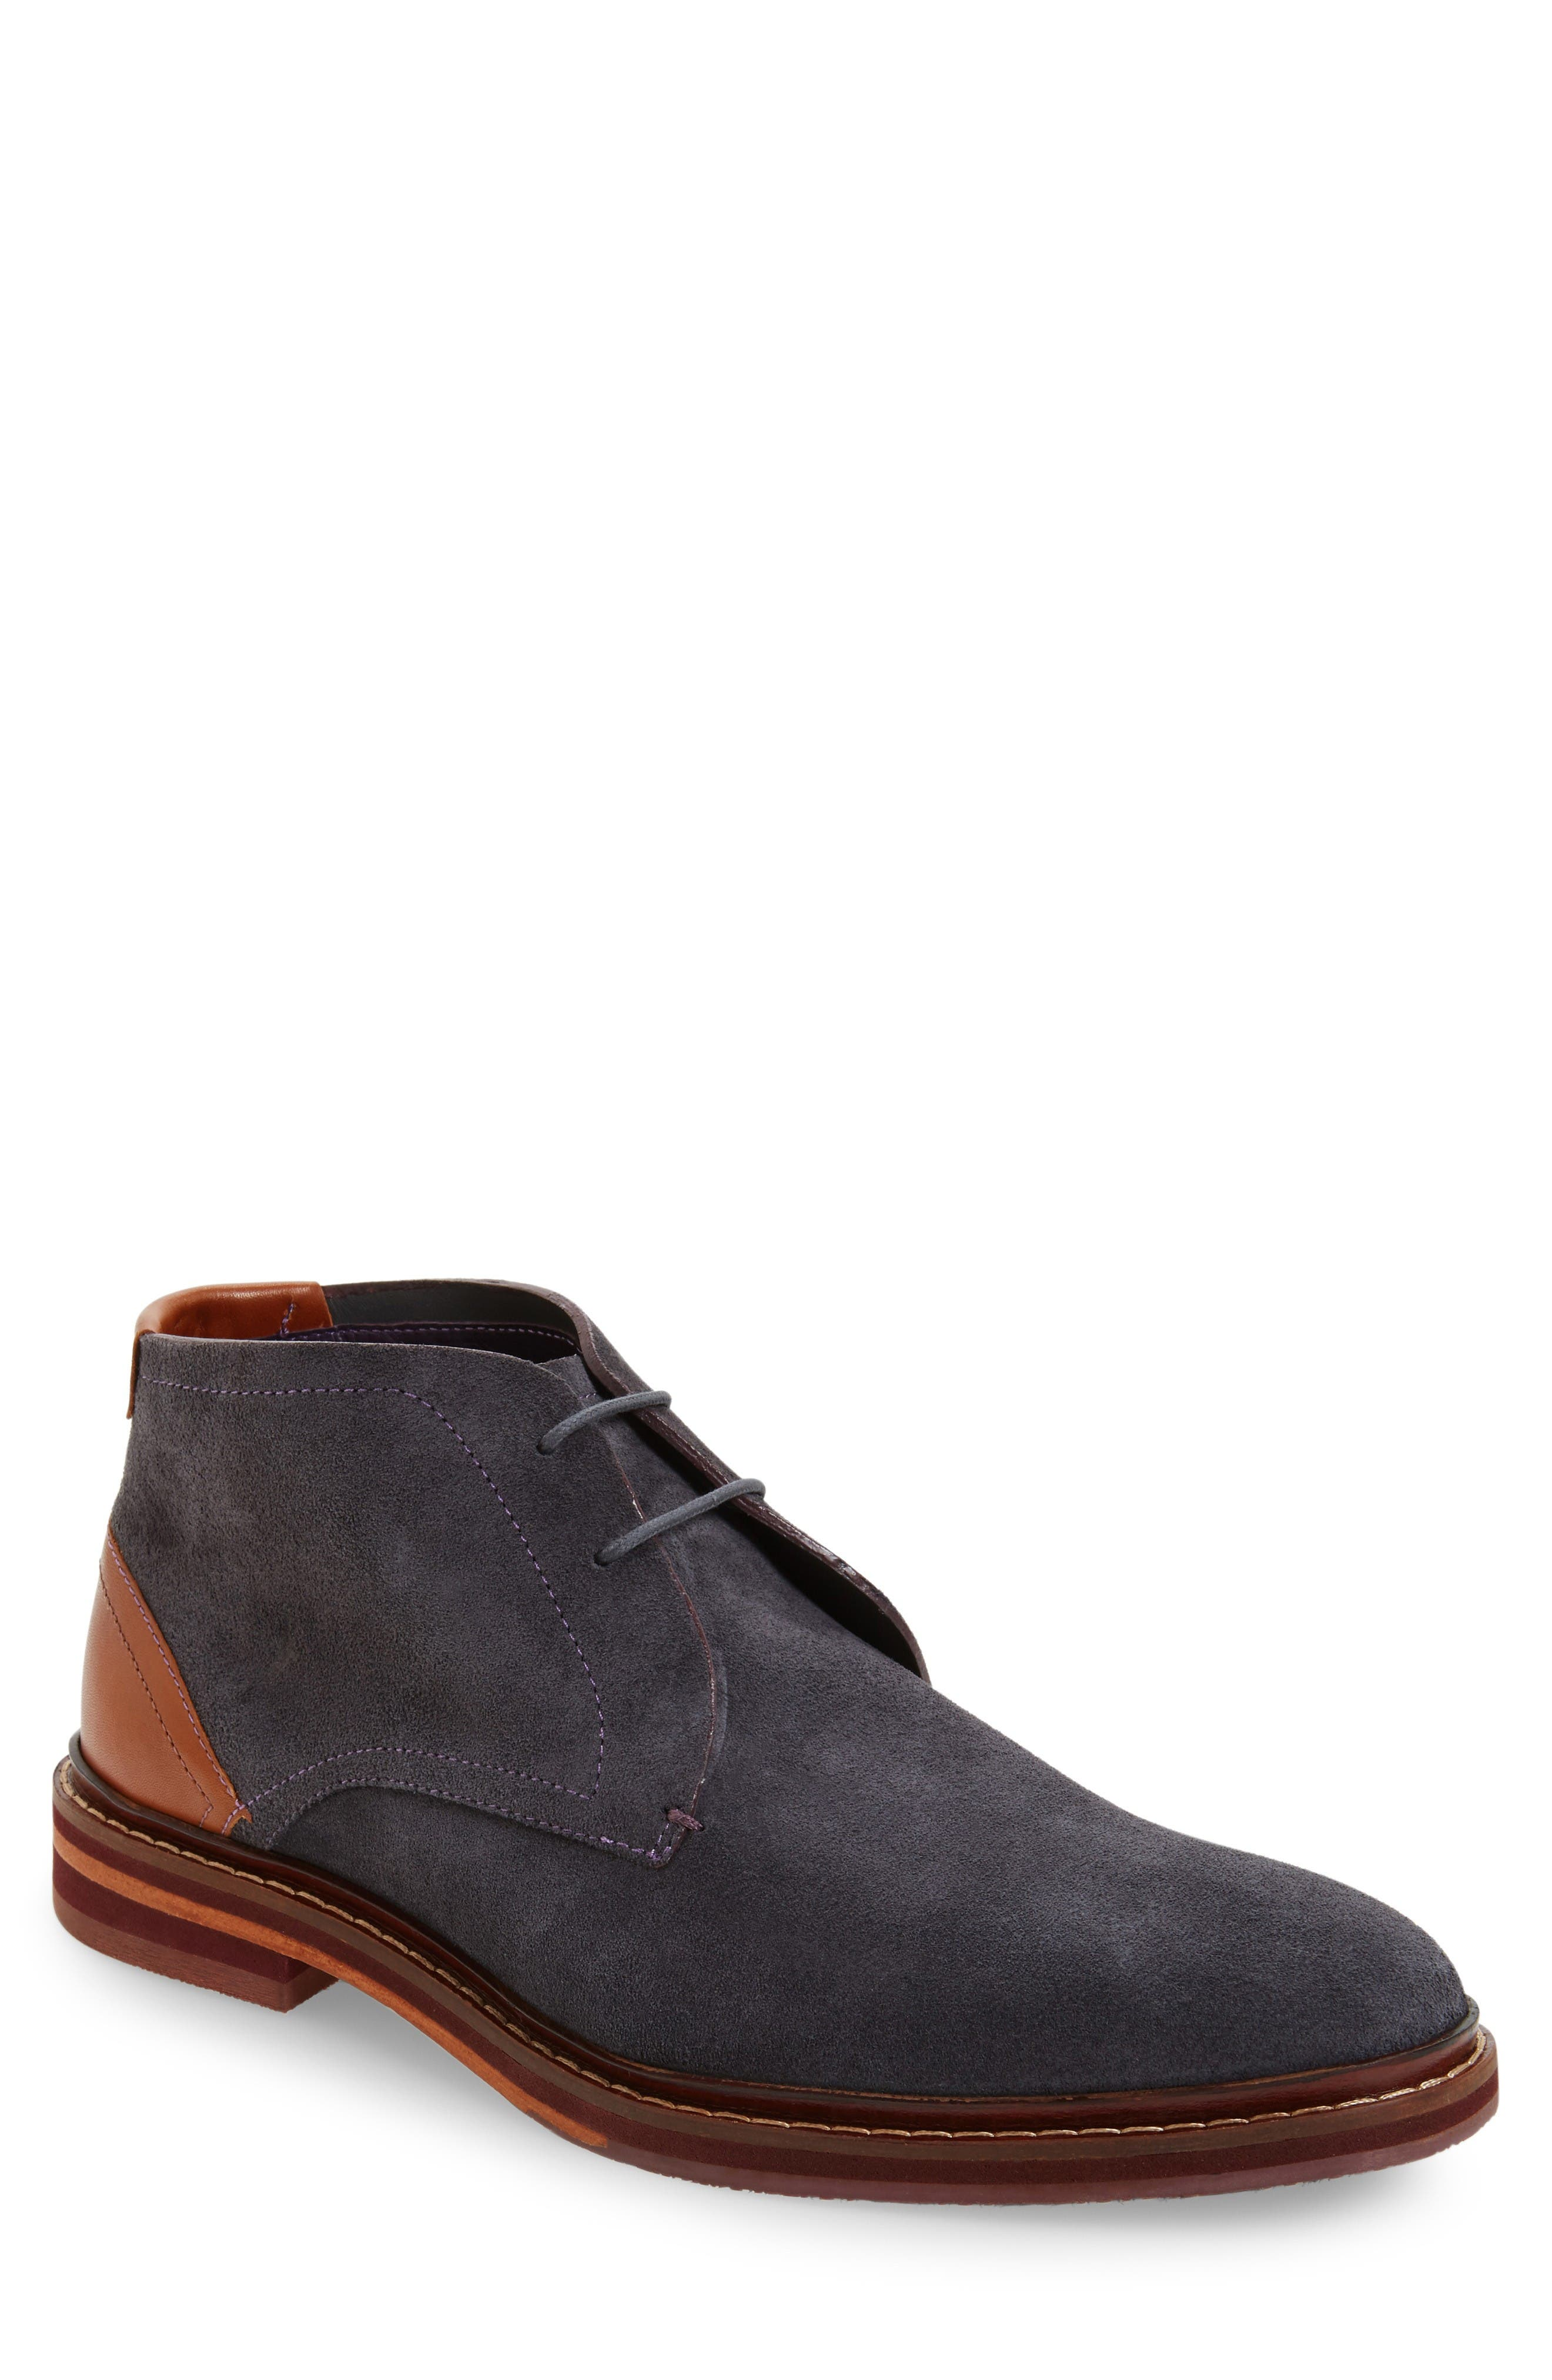 ted baker shoes goodyear welted bootstrap modal window